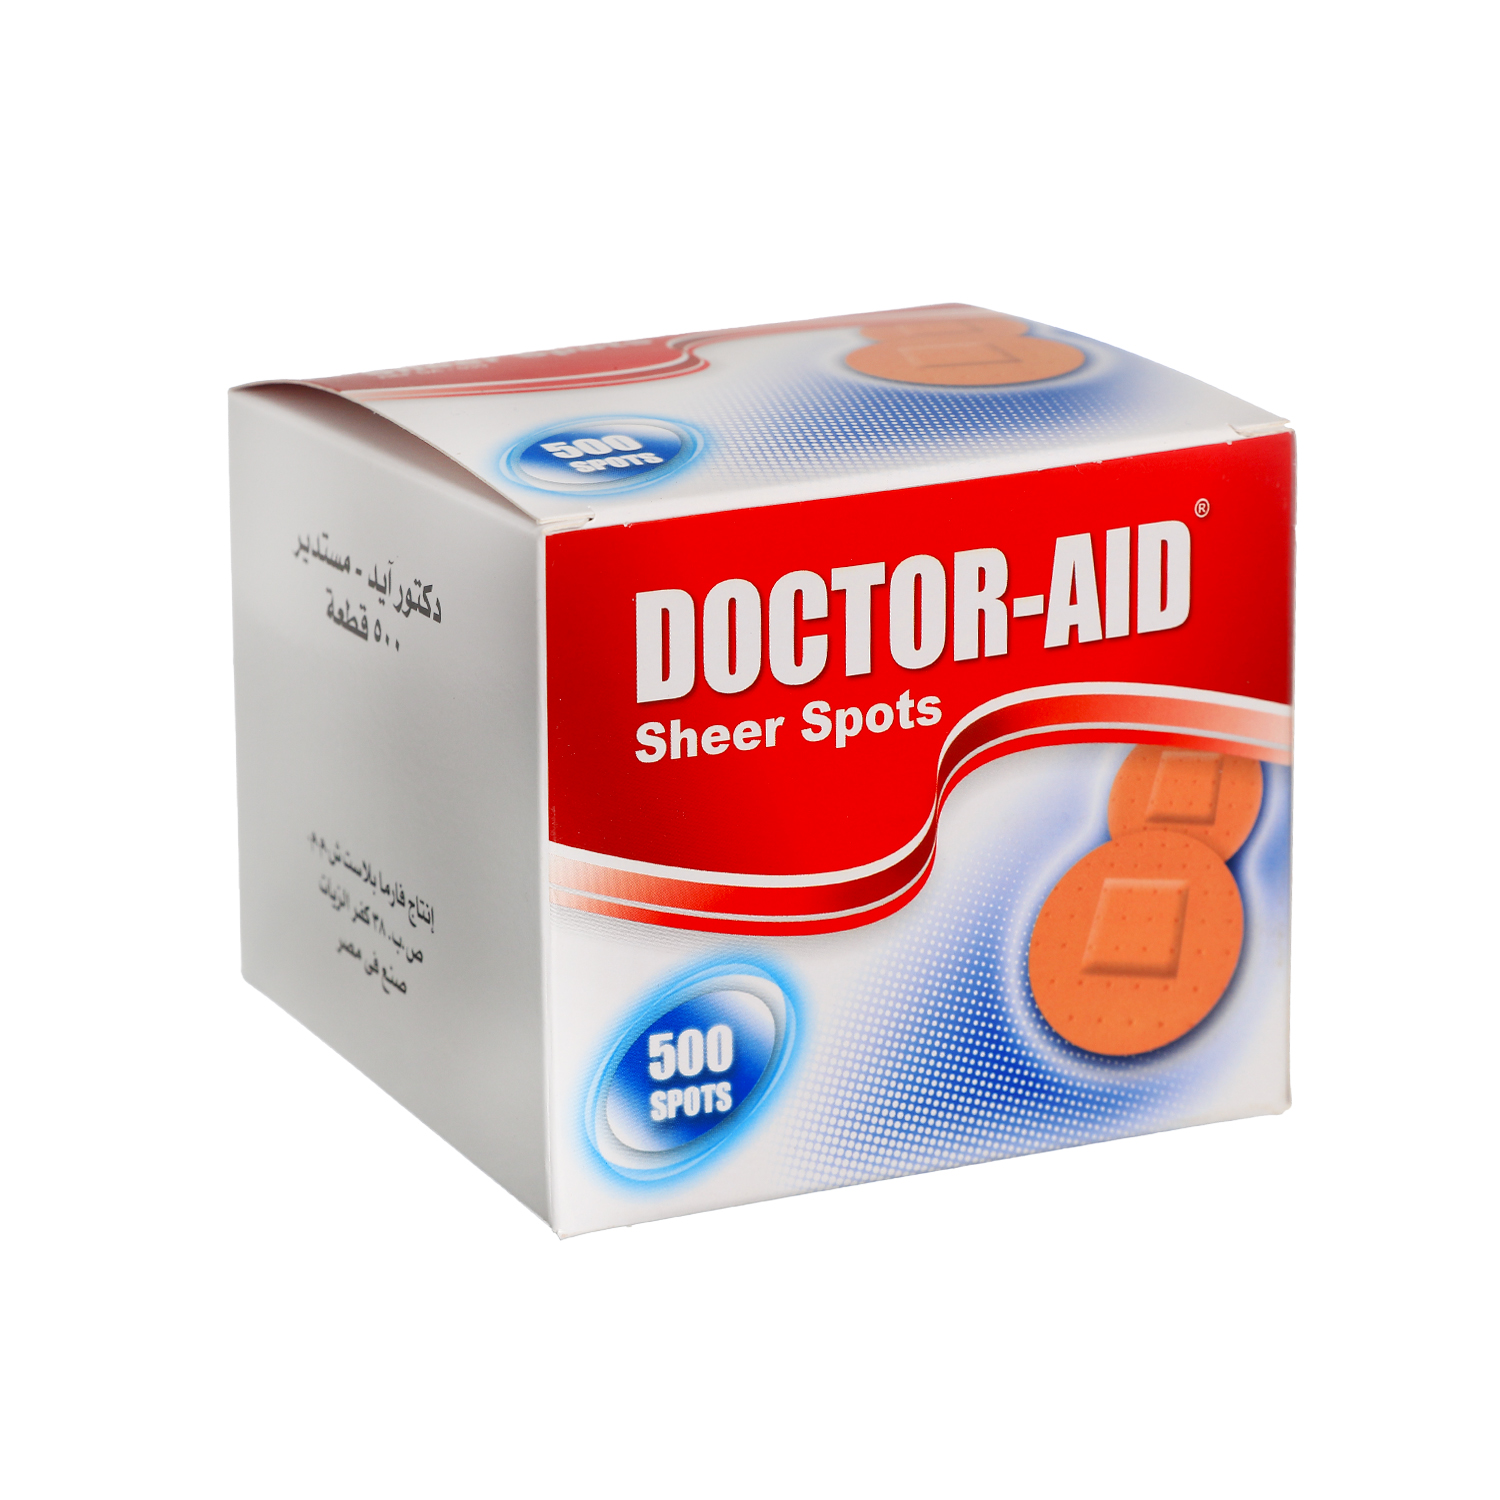 DOCTOR-AID500